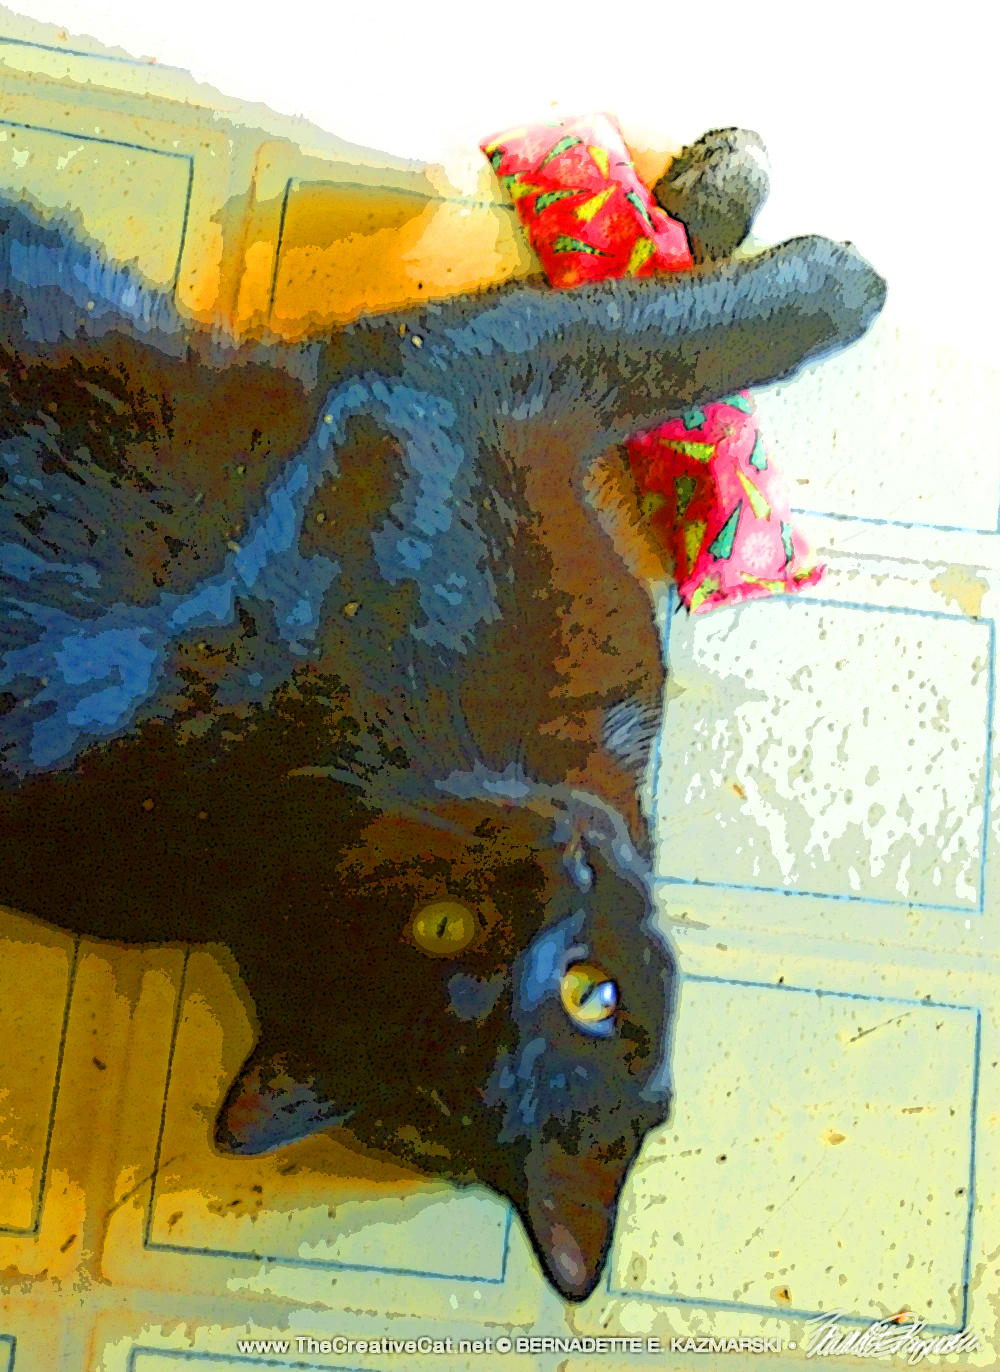 black cat with catnip toy Daily Cat Photo